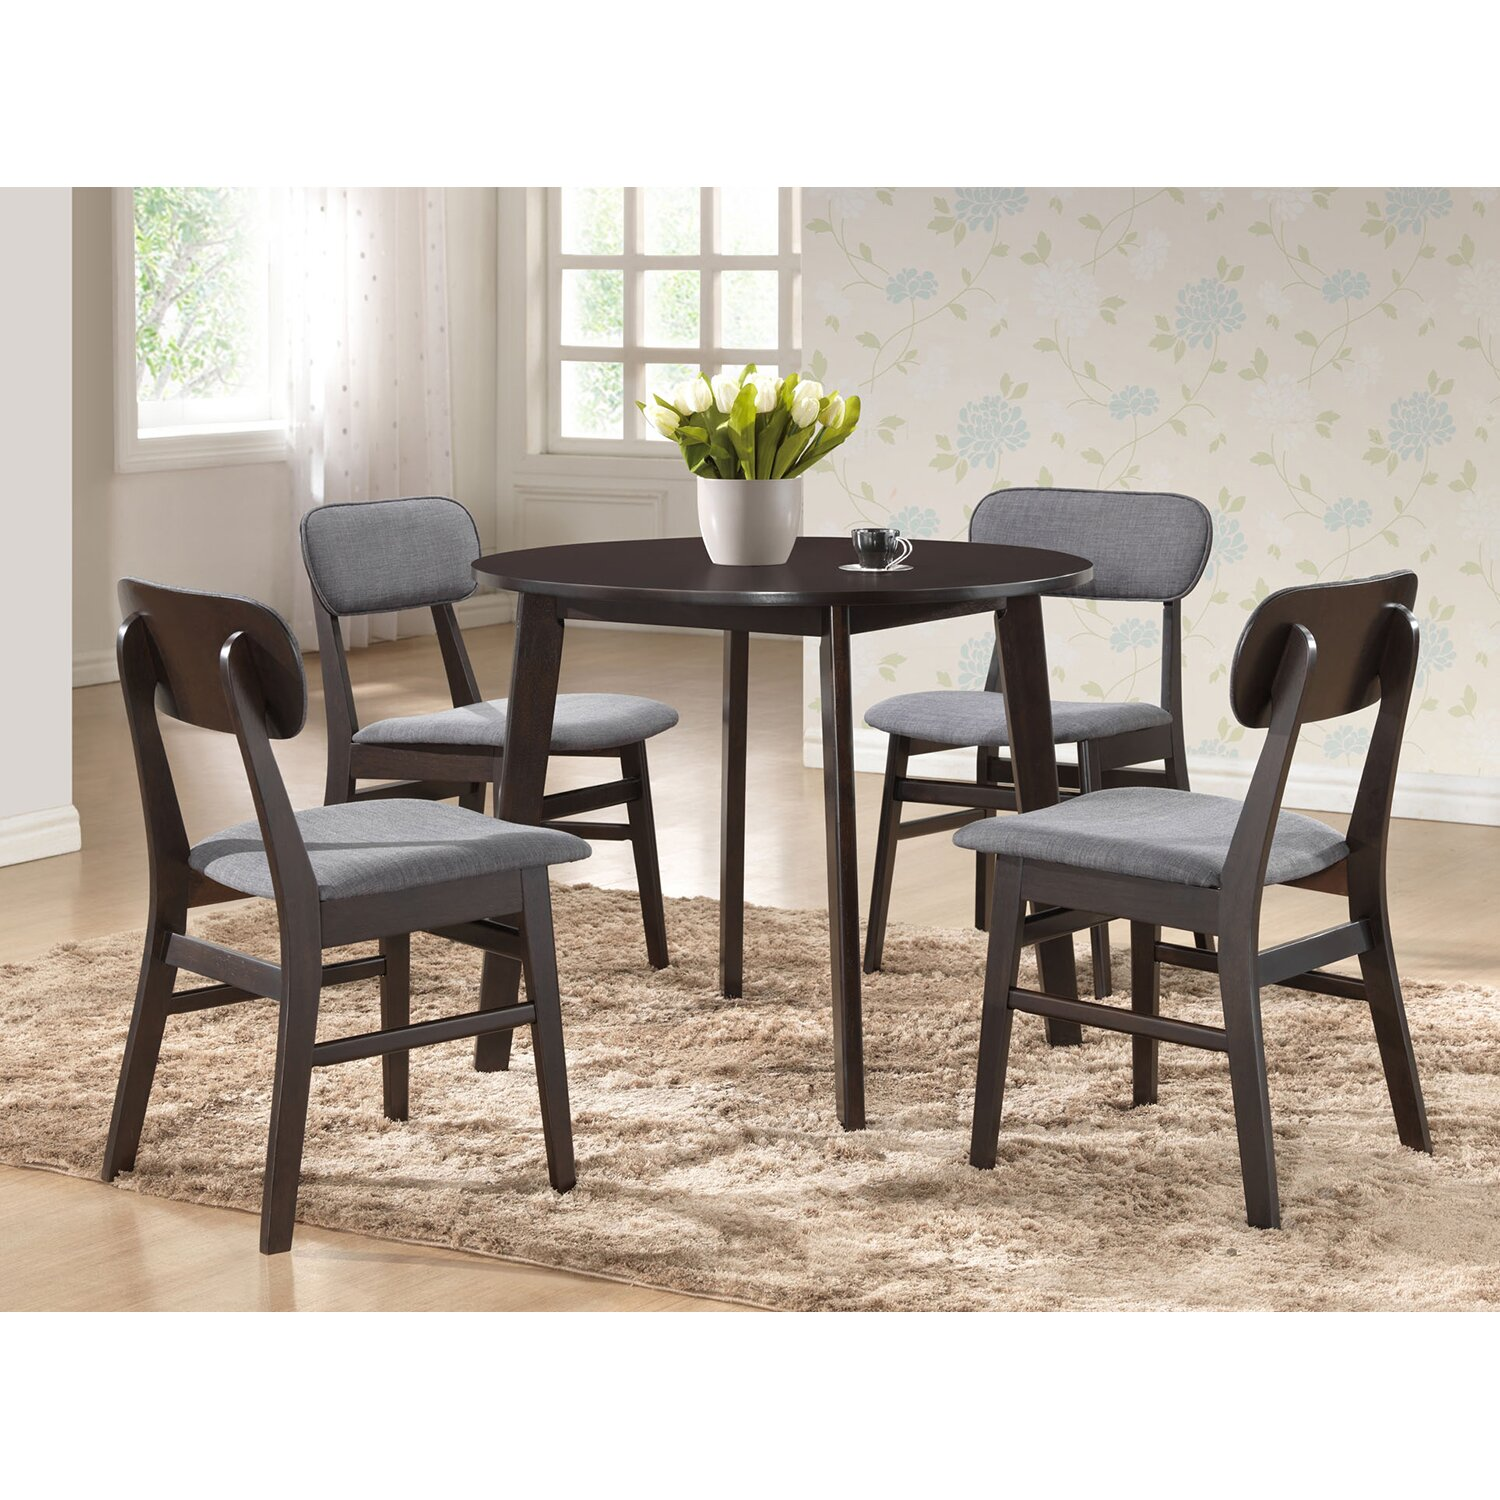 Wholesale Interiors Baxton Studio Debbie Dining Table